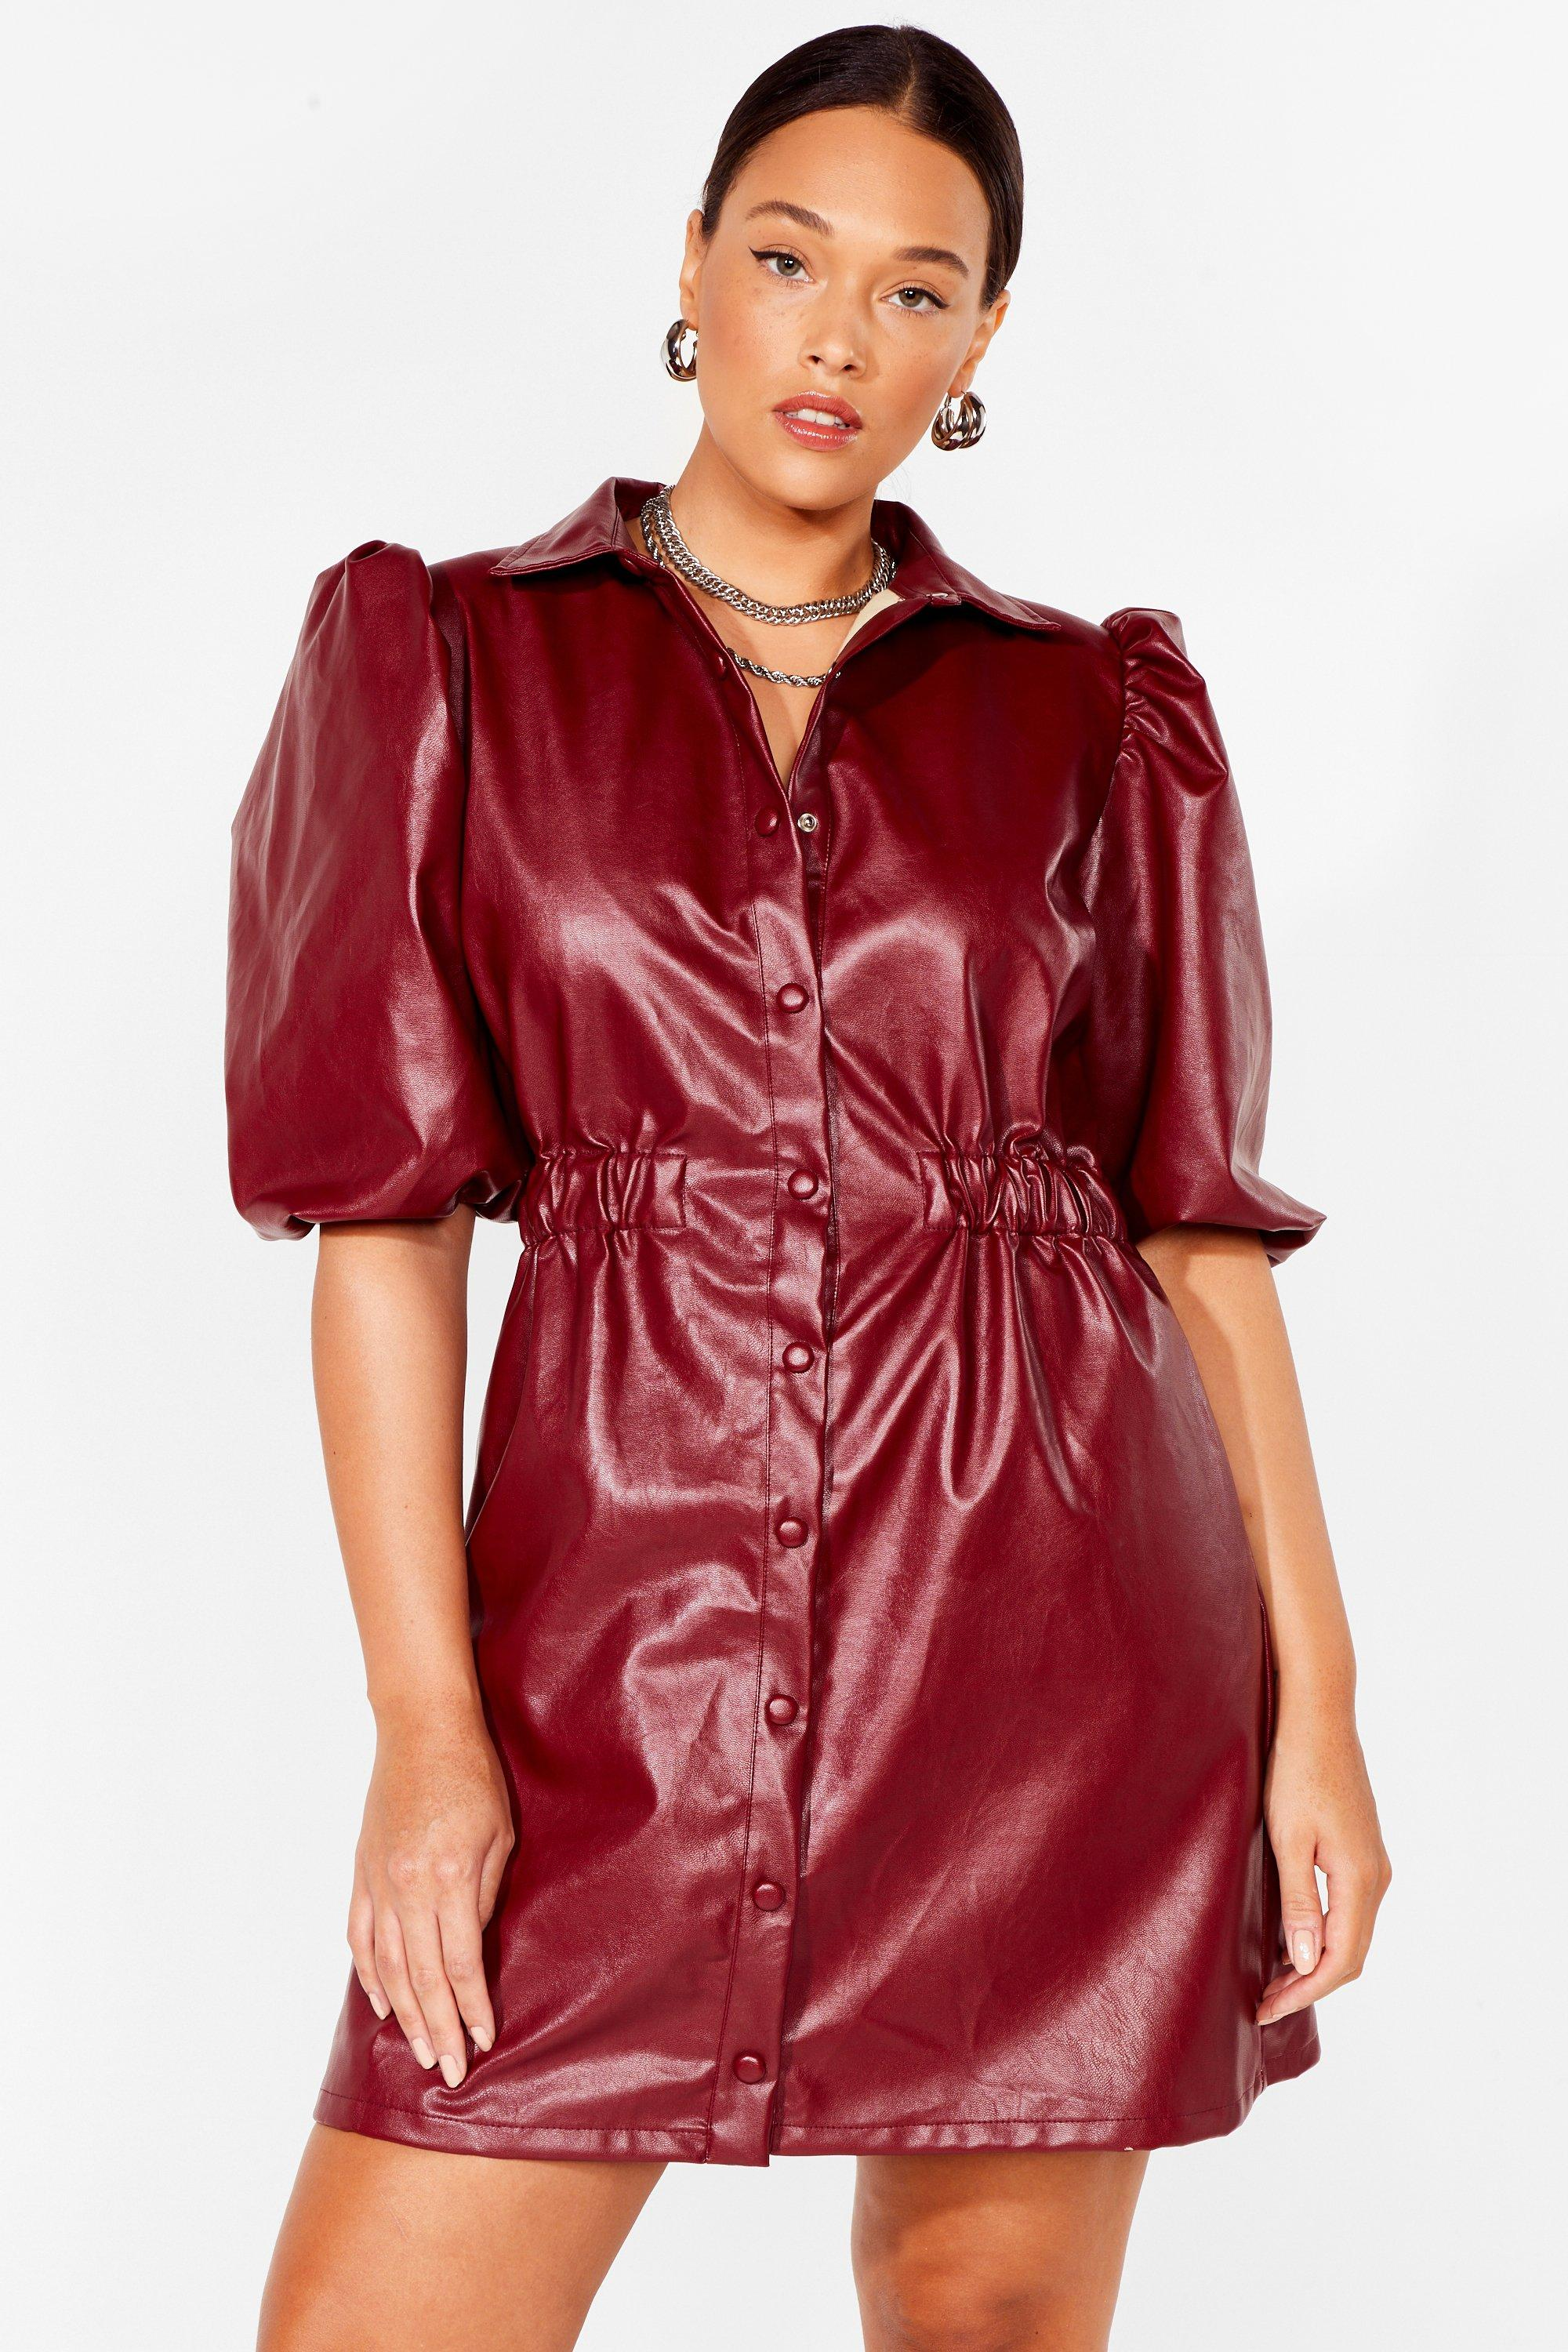 If You Faux Leather Wanna Be in Love Plus Dress 18